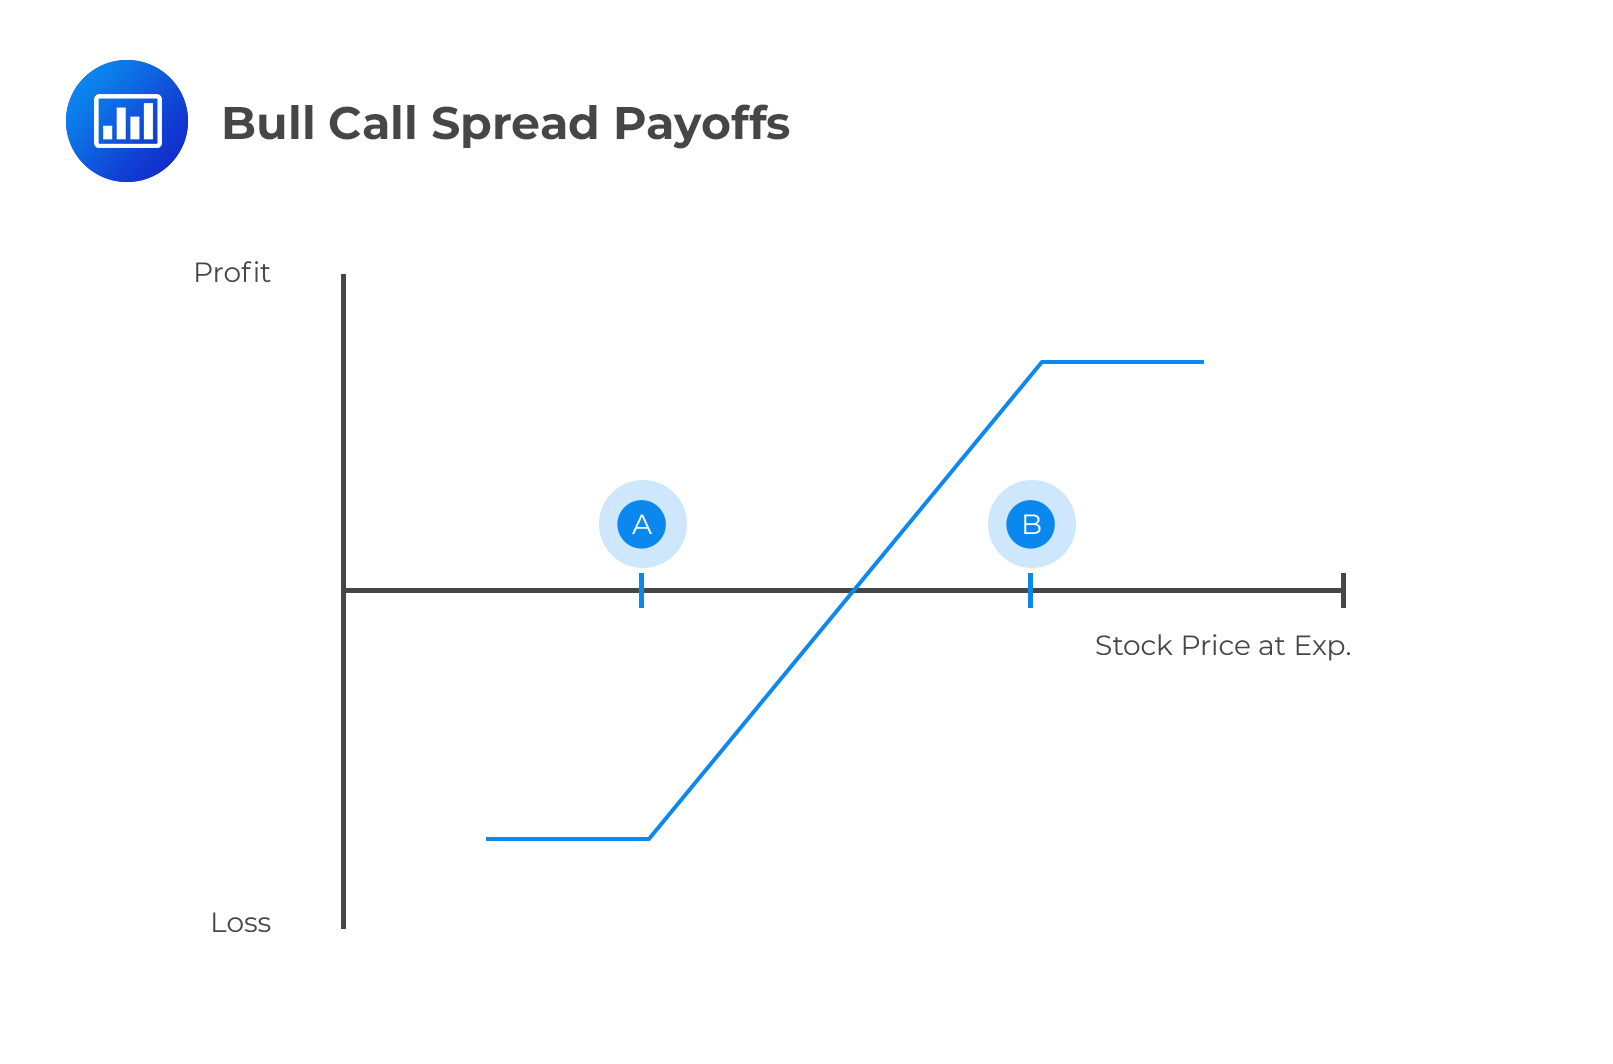 bull call spread payoffs